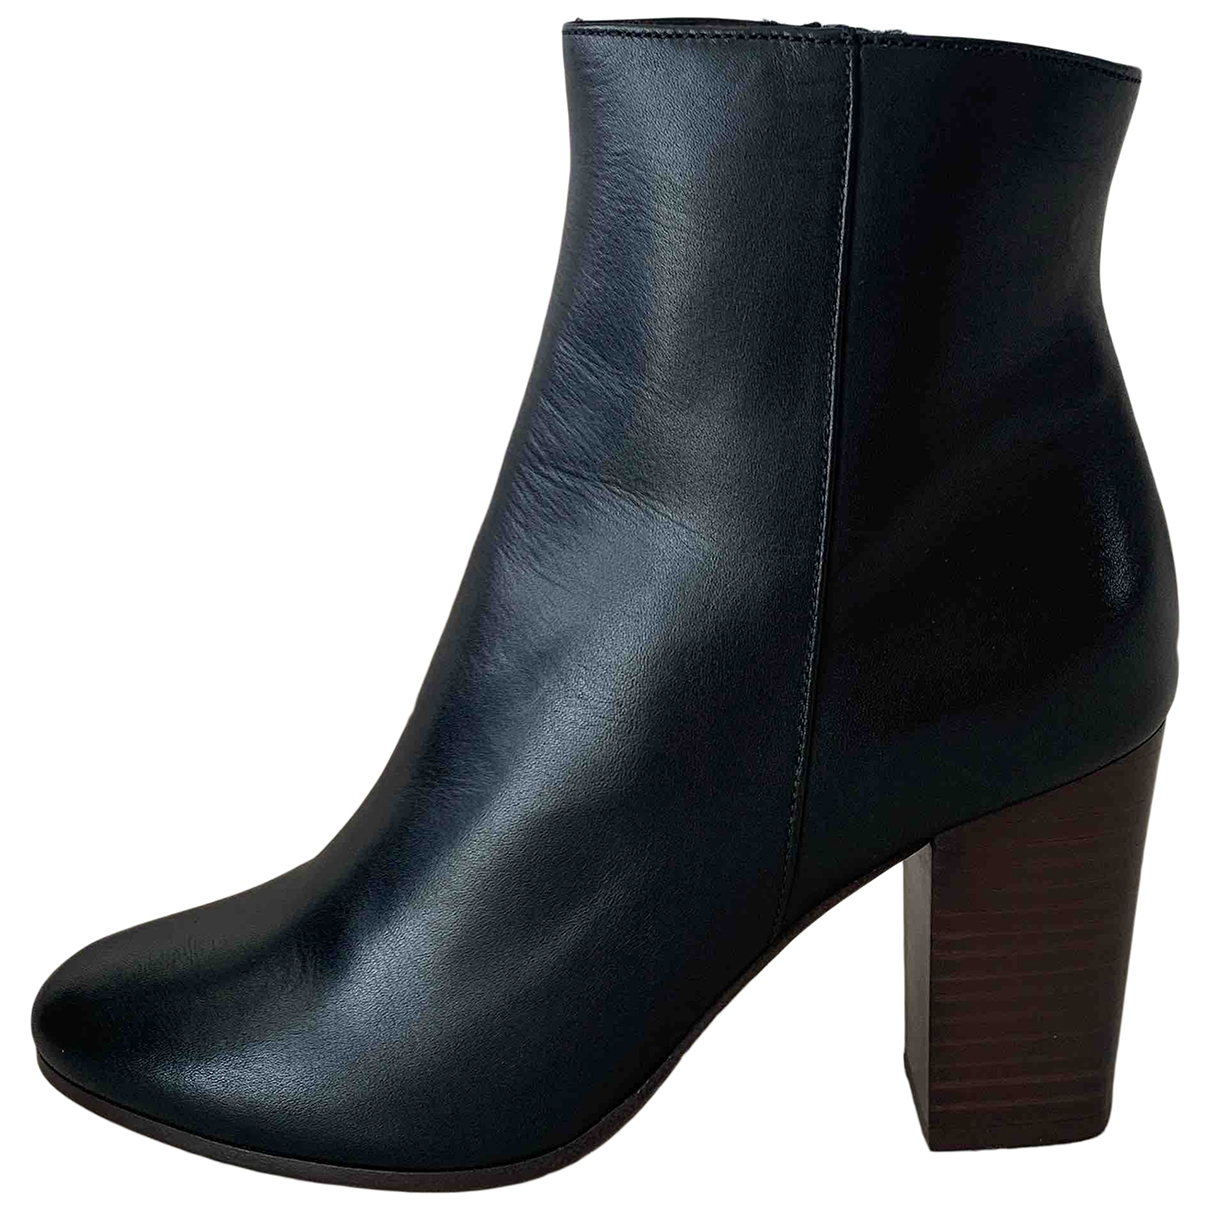 Maje Spring Summer 2020 Black Leather Ankle boots for Women 37 EU